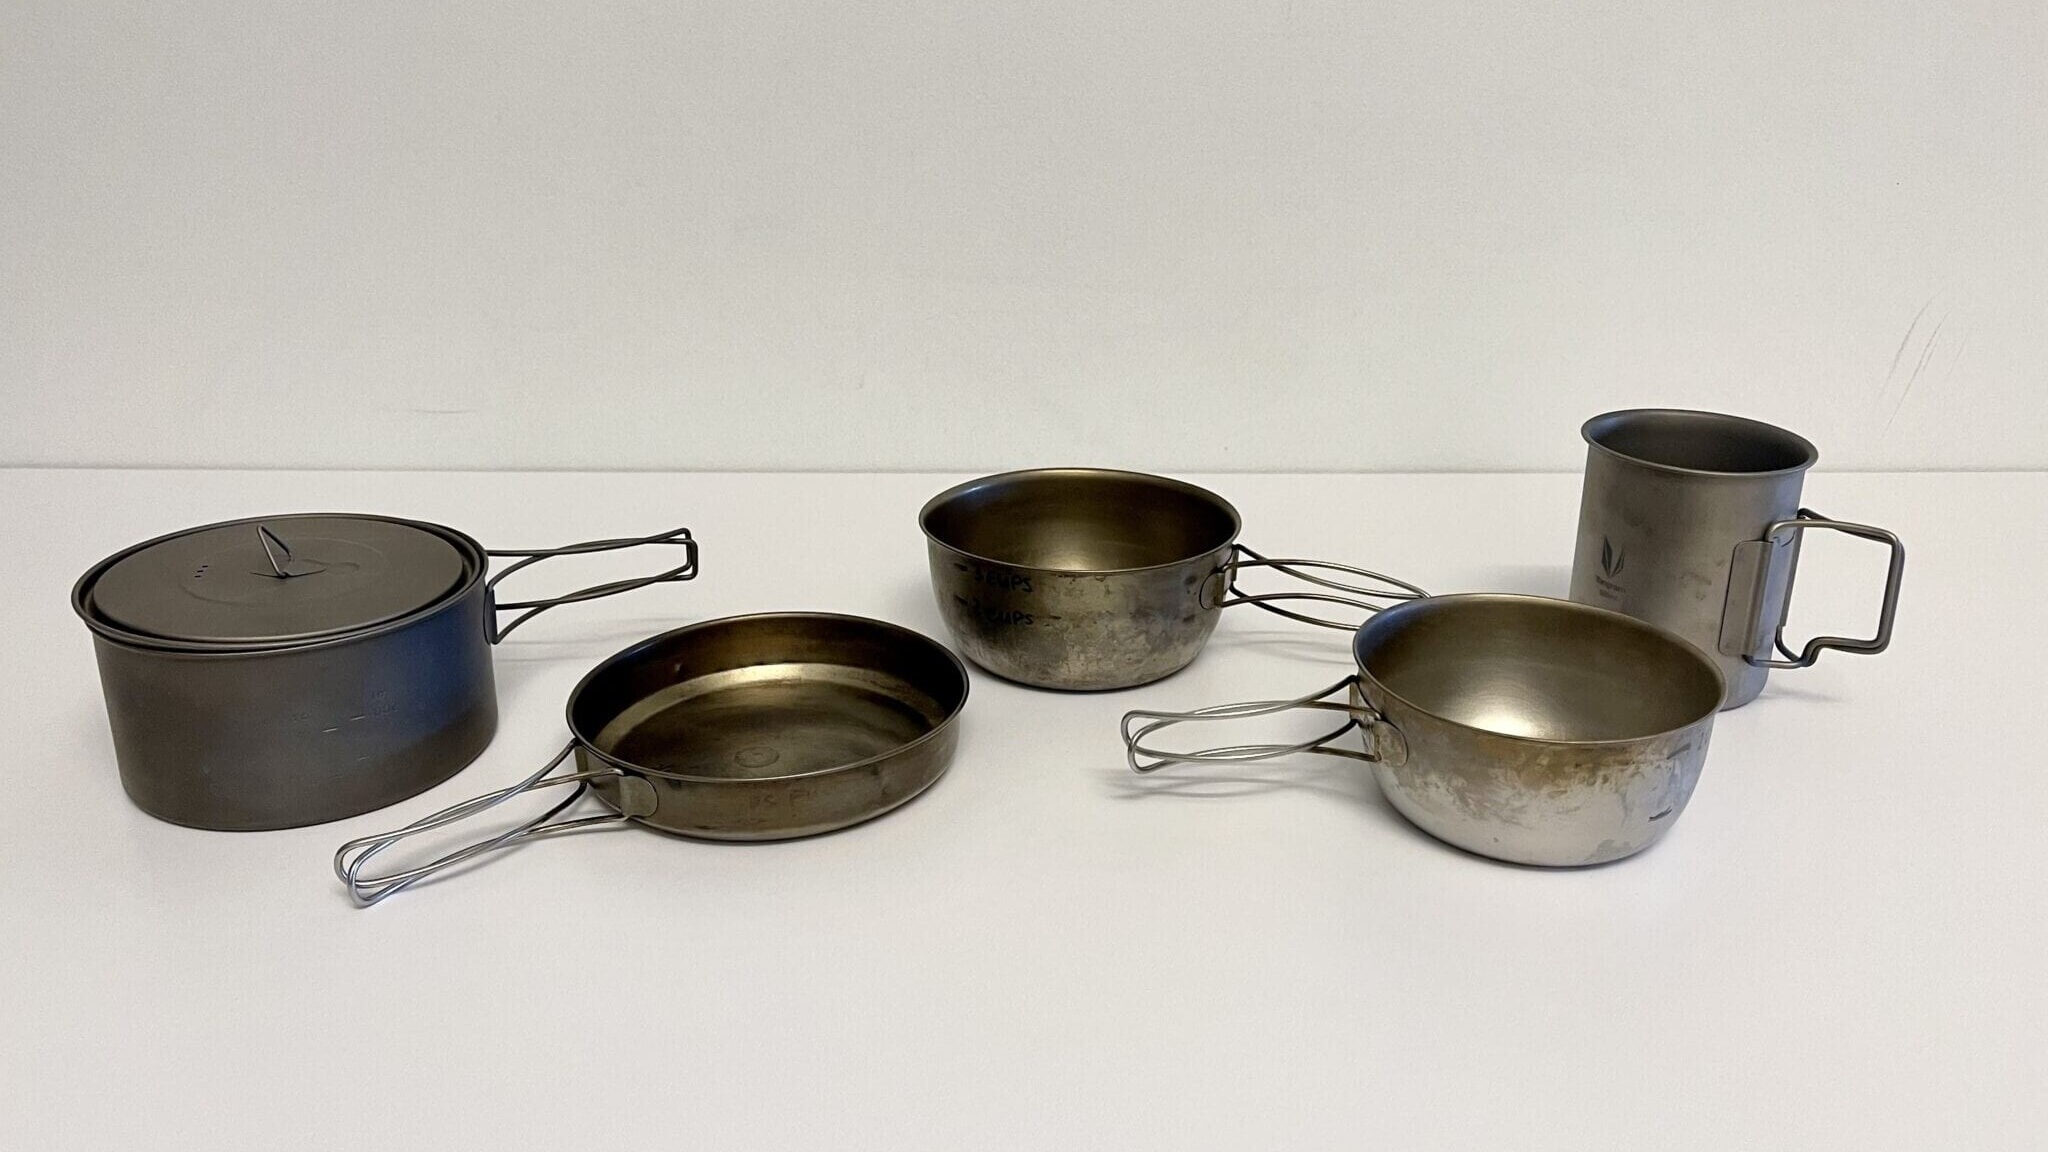 Five different sized backpacking cooking pots on a table.